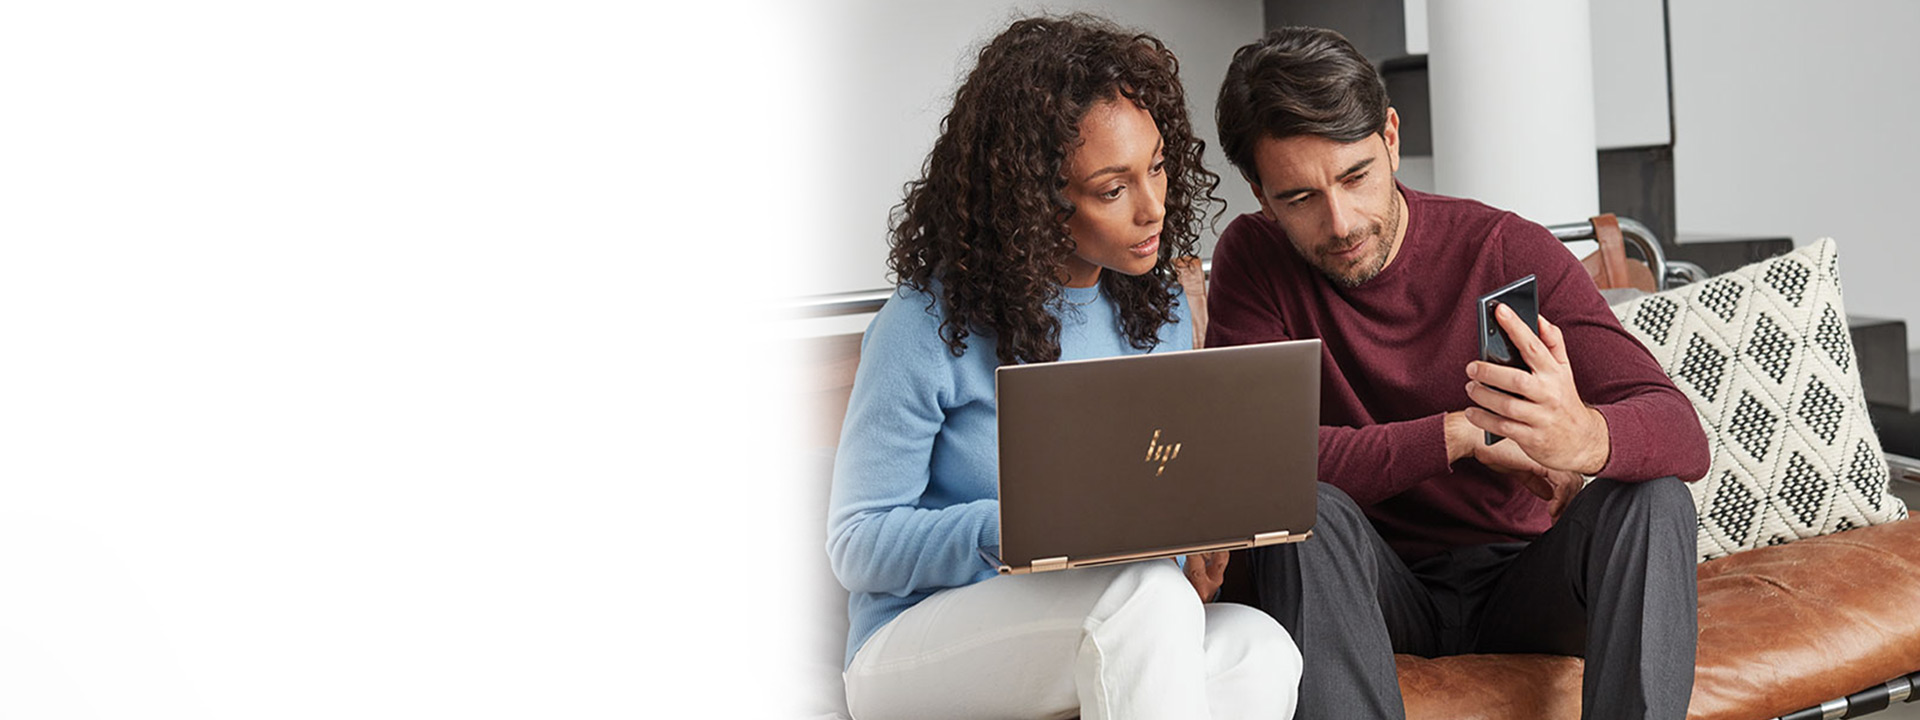 Woman and Man sitting on couch look at Windows 10 laptop and mobile device together